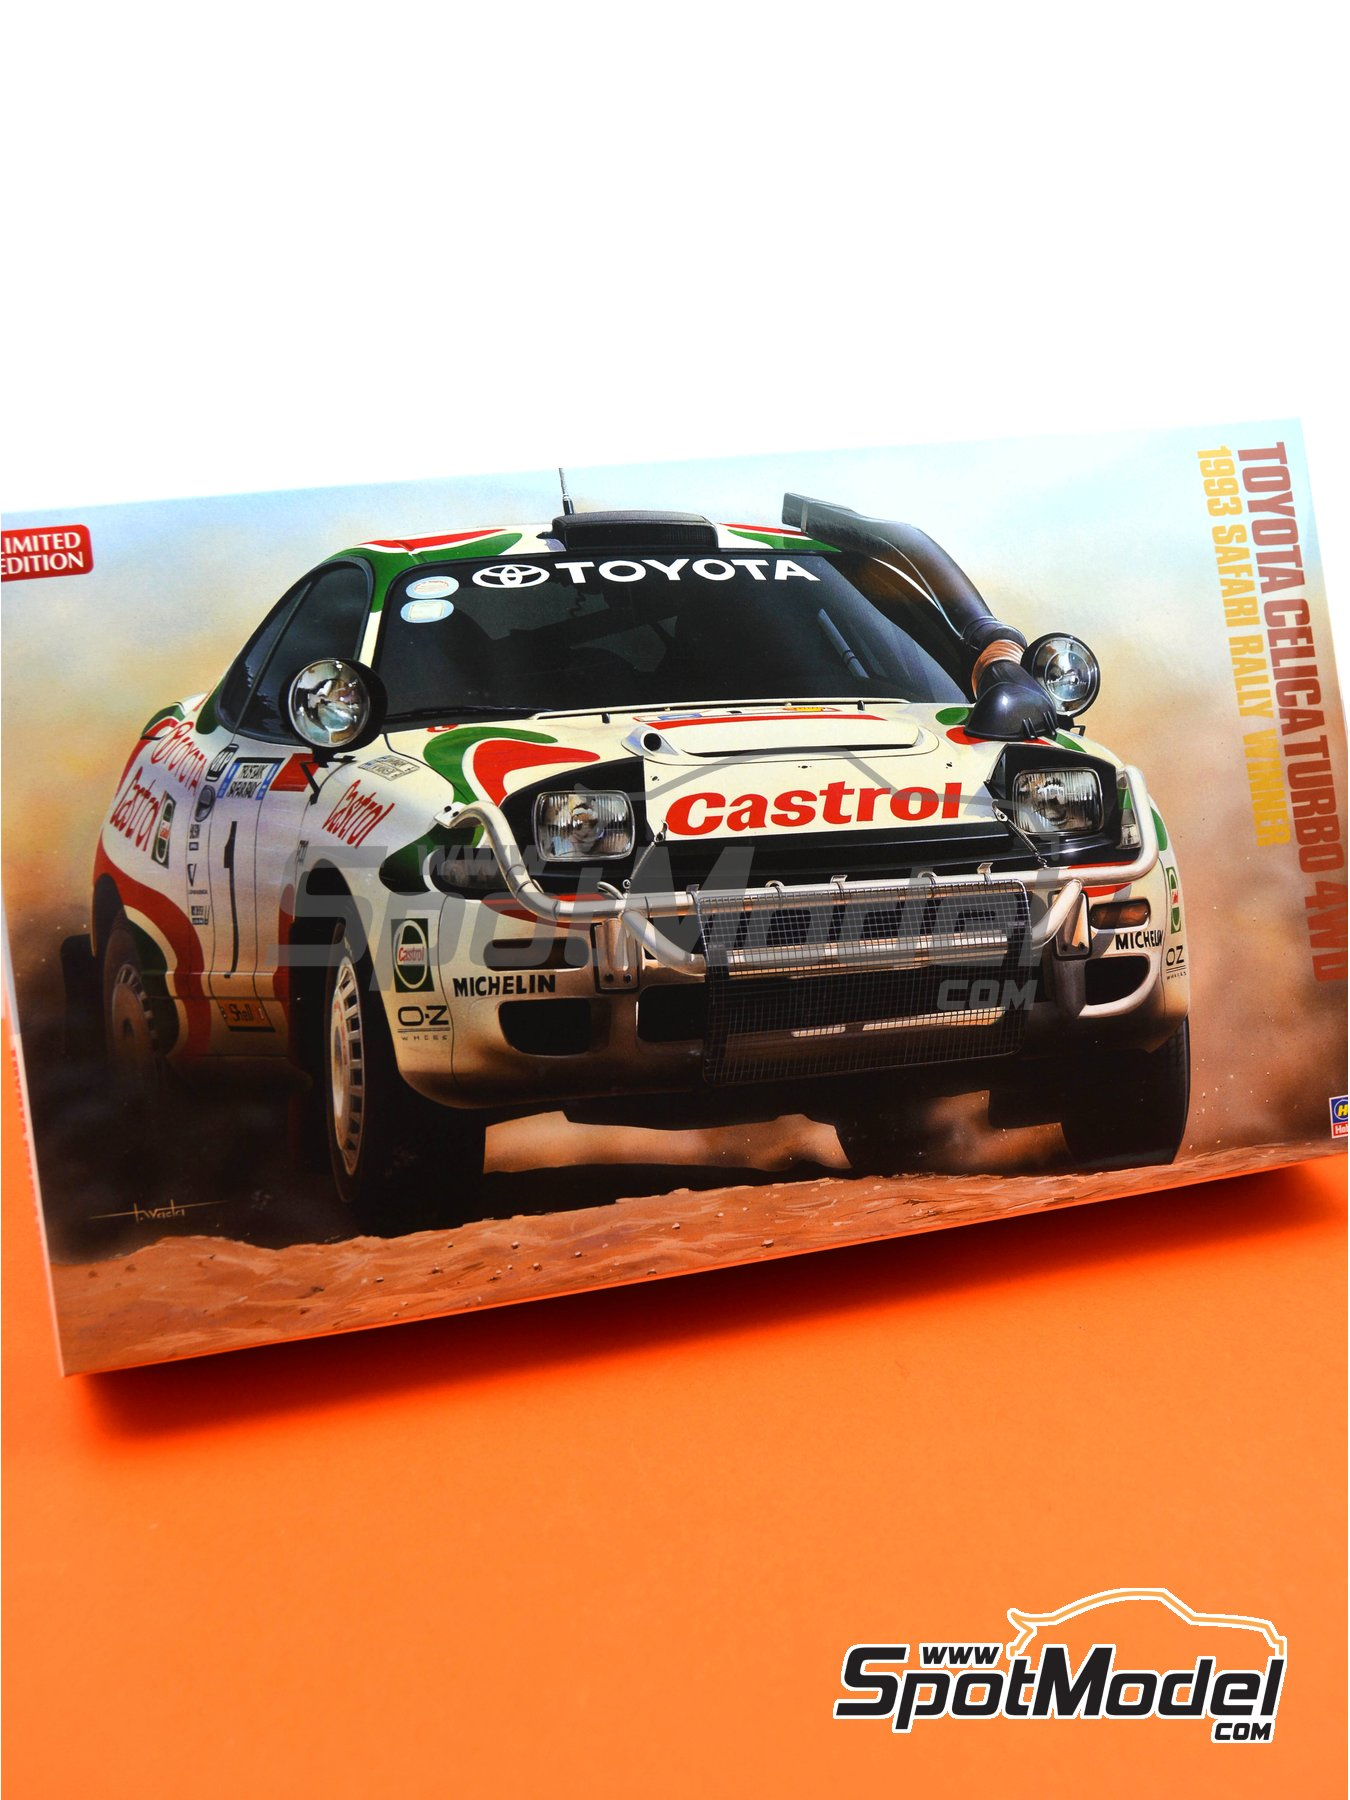 Toyota Celica Turbo 4WD - Safari Rally 1993 | Model car kit in 1/24 scale manufactured by Hasegawa (ref. 20309) image